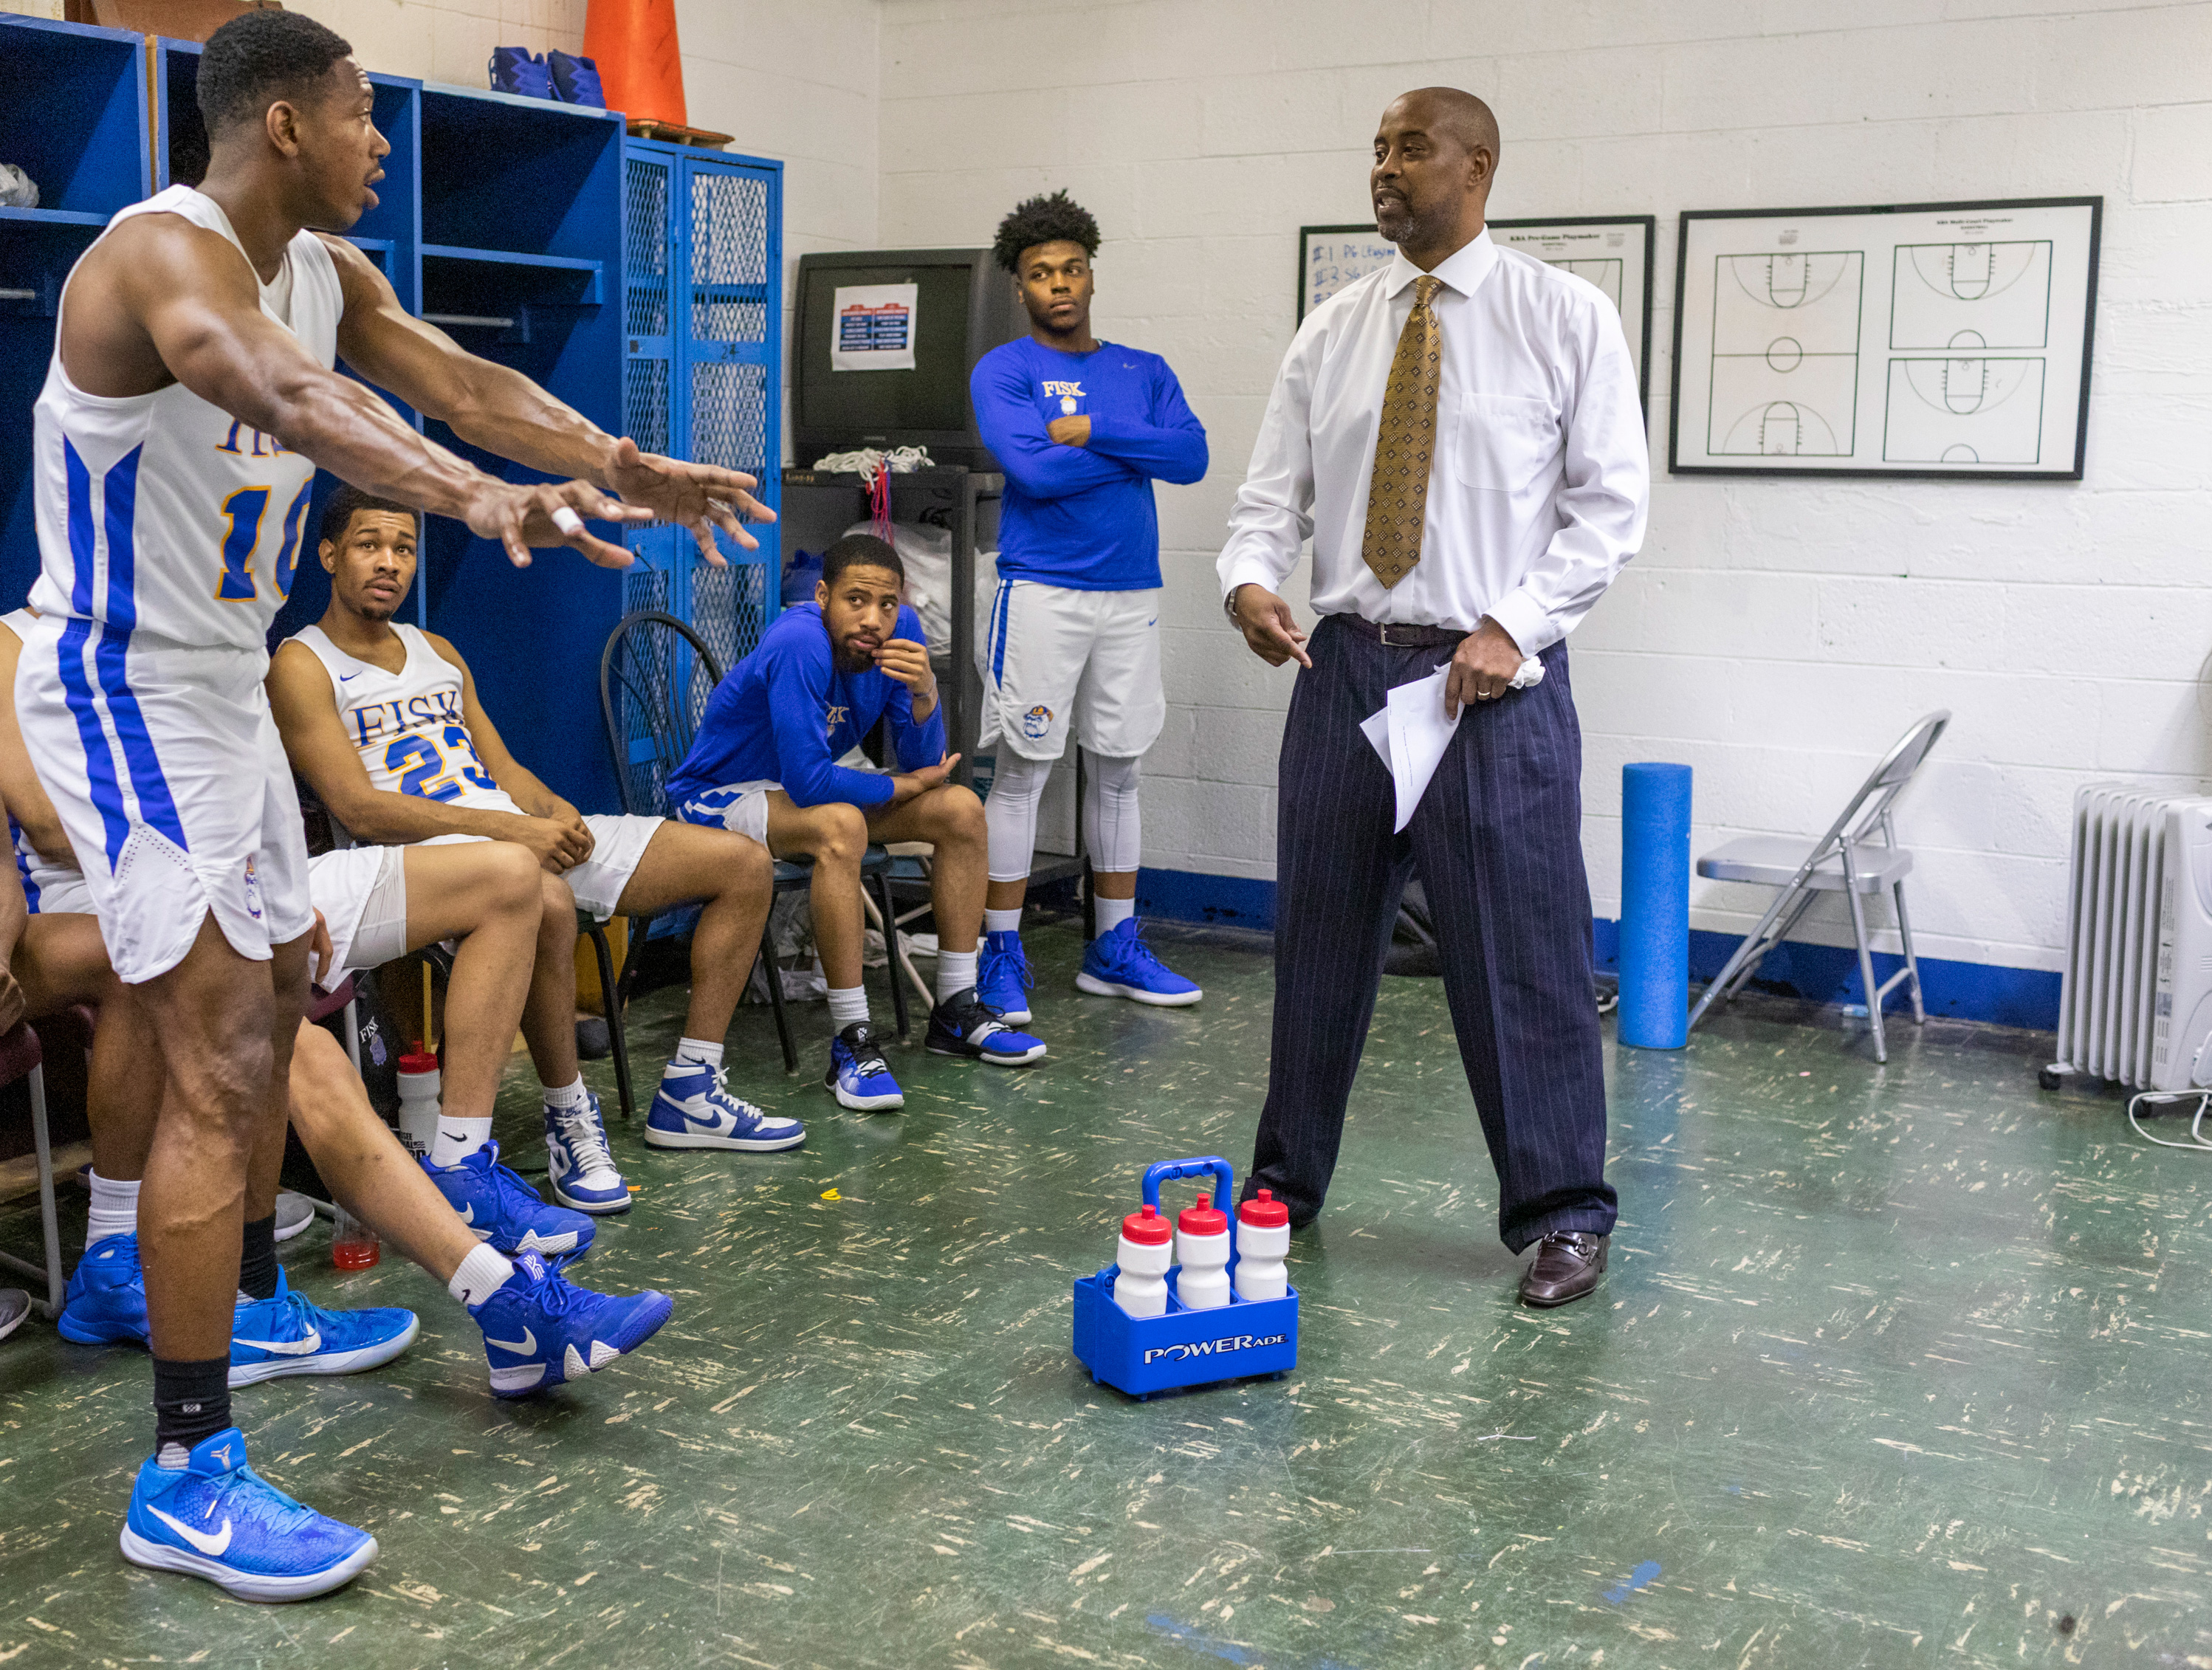 Kenny Anderson meets with his players in the locker room during halftime. fe5320dae